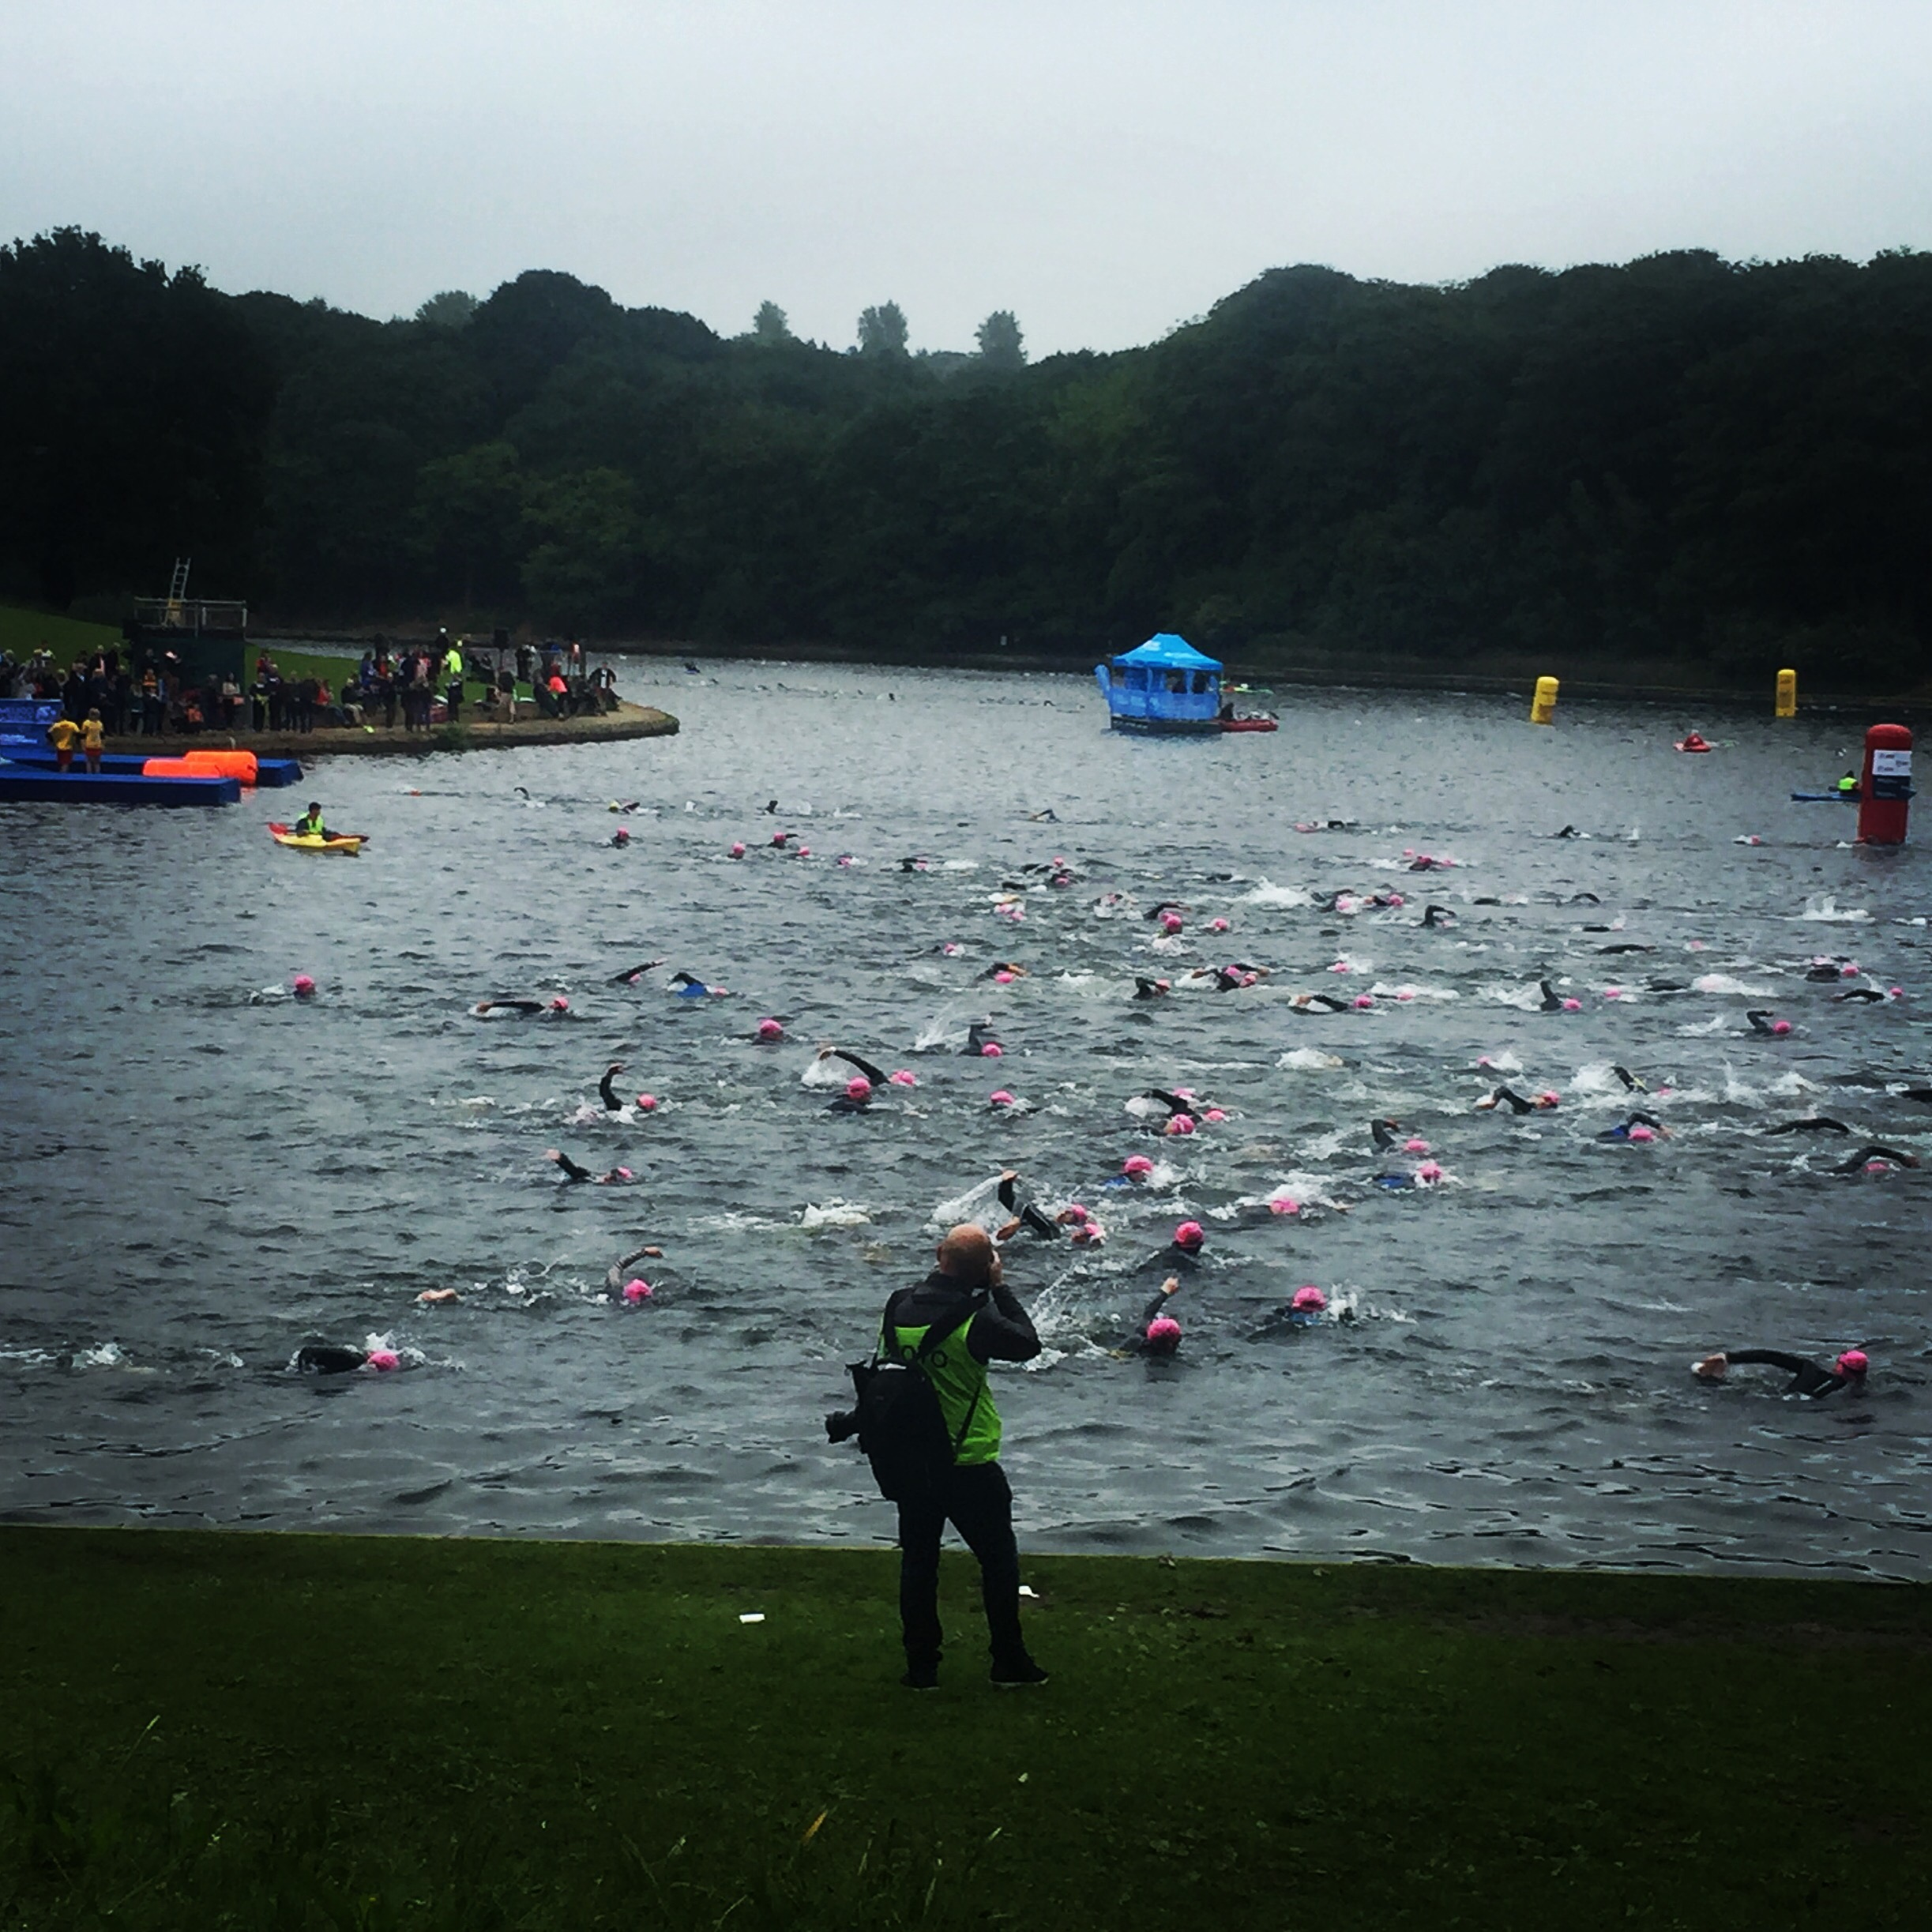 What It Was Like To Race The Leeds Wts Triathlon Reading Running Cycling